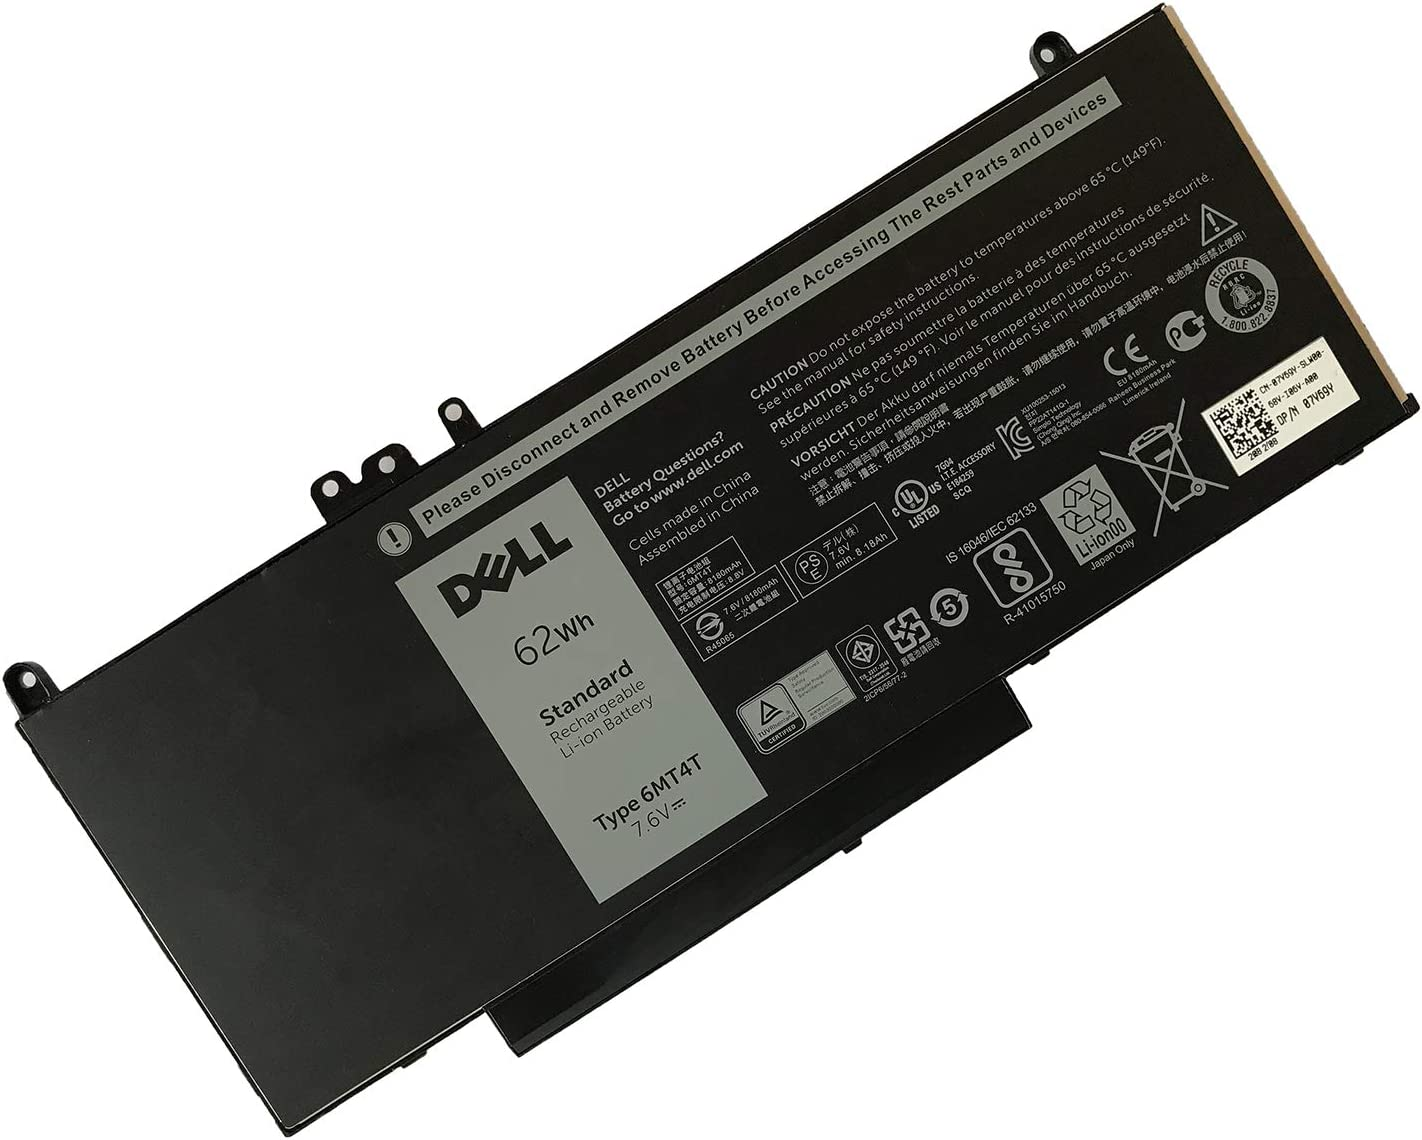 DELL 6MT4T 7.6V 62WH Lithium Polymer Battery for DELL Latitude E5470 E5570 Series Notebook